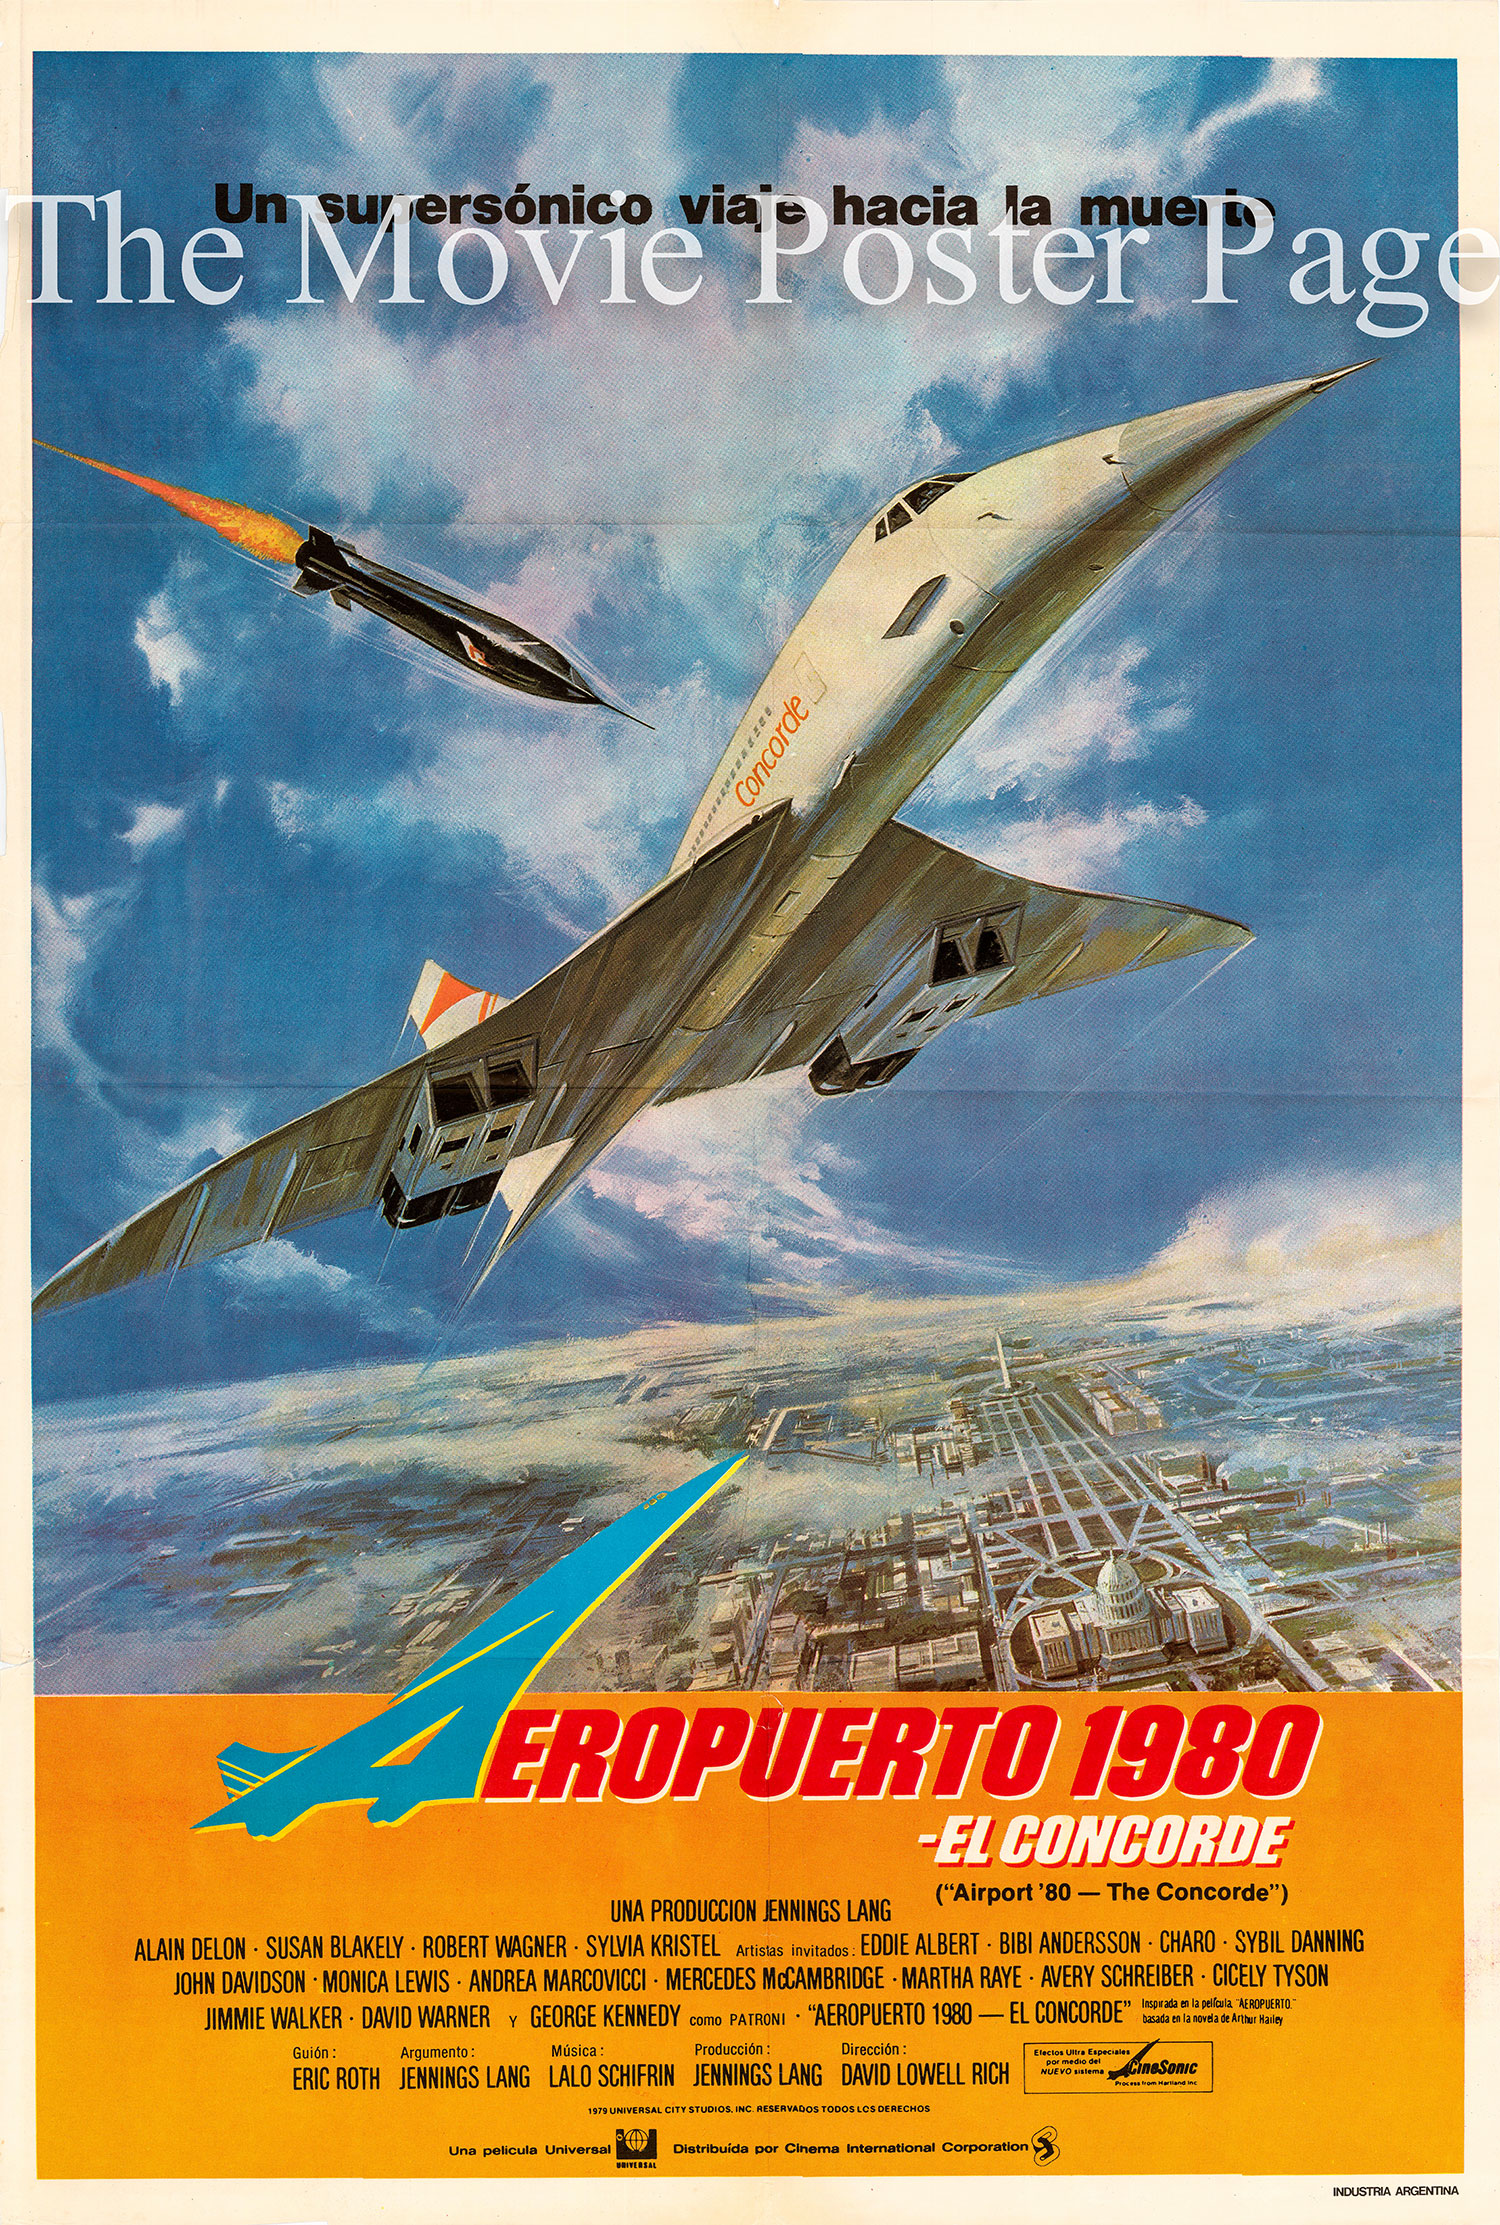 Pictured is an Argentine one-sheet for the 1979 David Lowell Rich film Airport '80-The Concord starring Alain Delon.